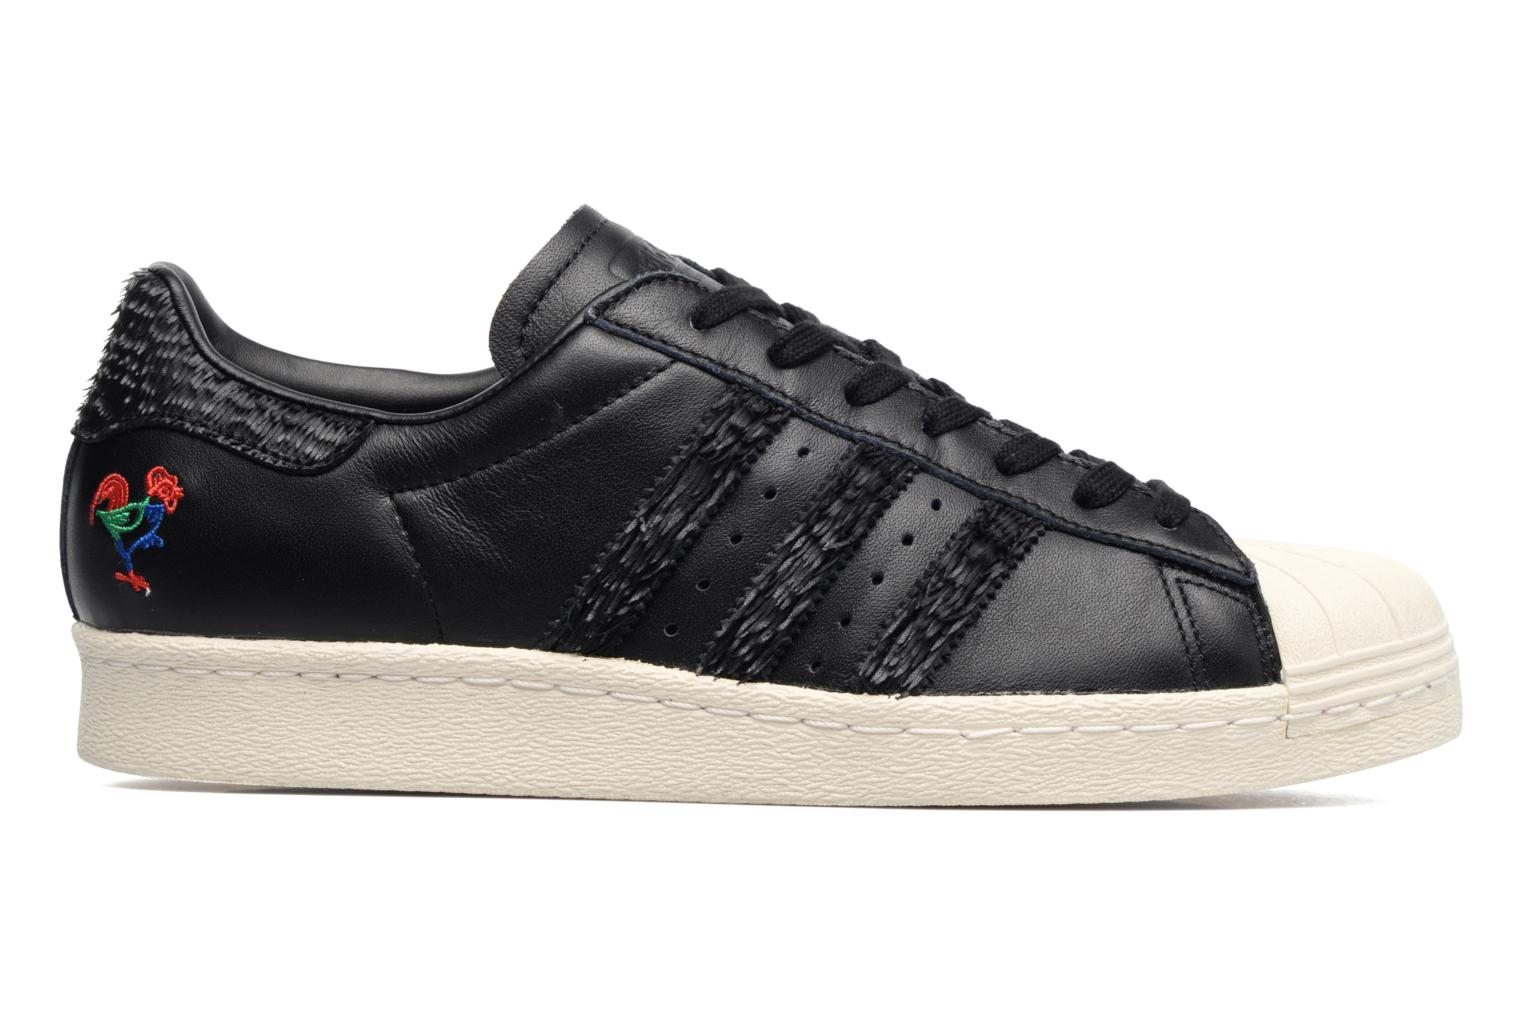 Superstar 80S Cny Noiess/Noiess/Blacra